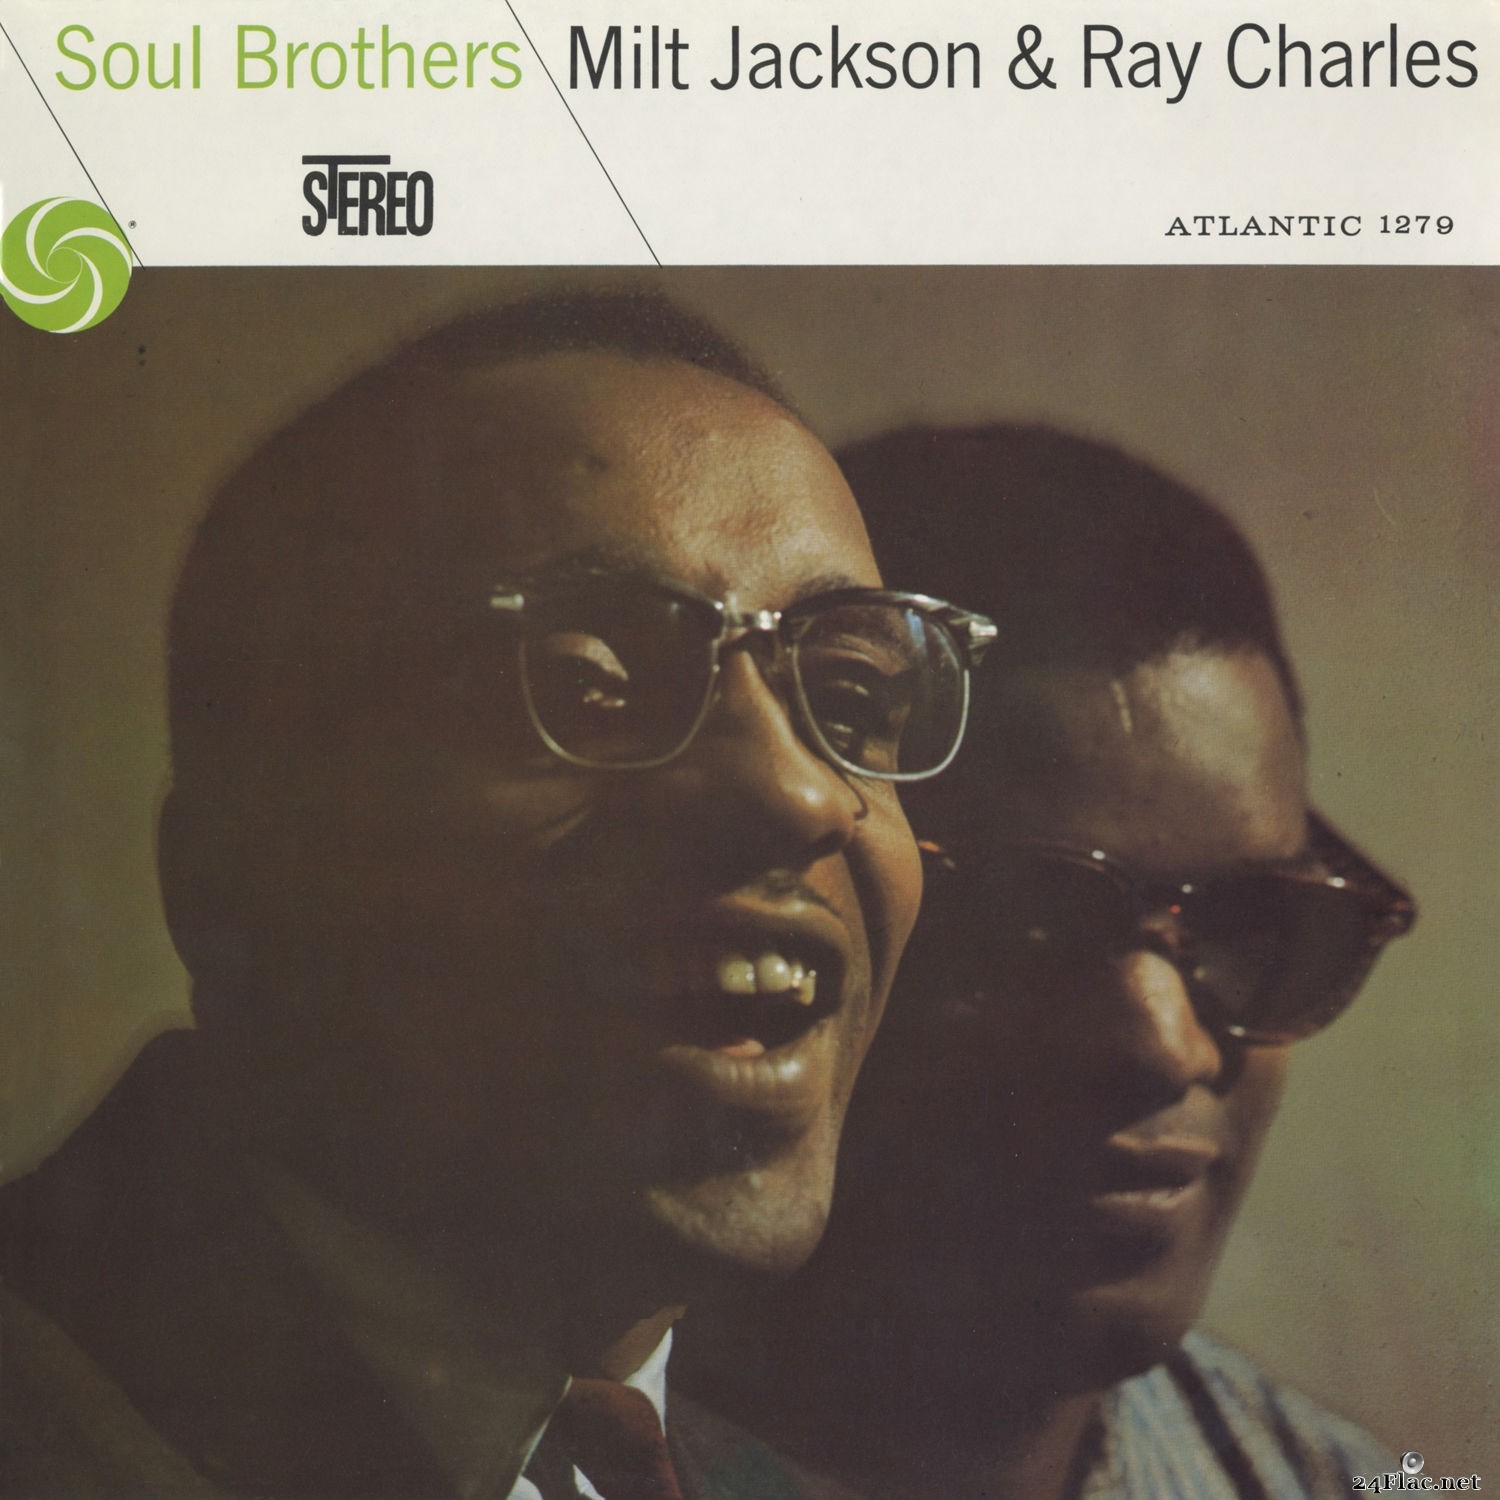 Milt Jackson & Ray Charles - Soul Brothers (2012) Hi-Res